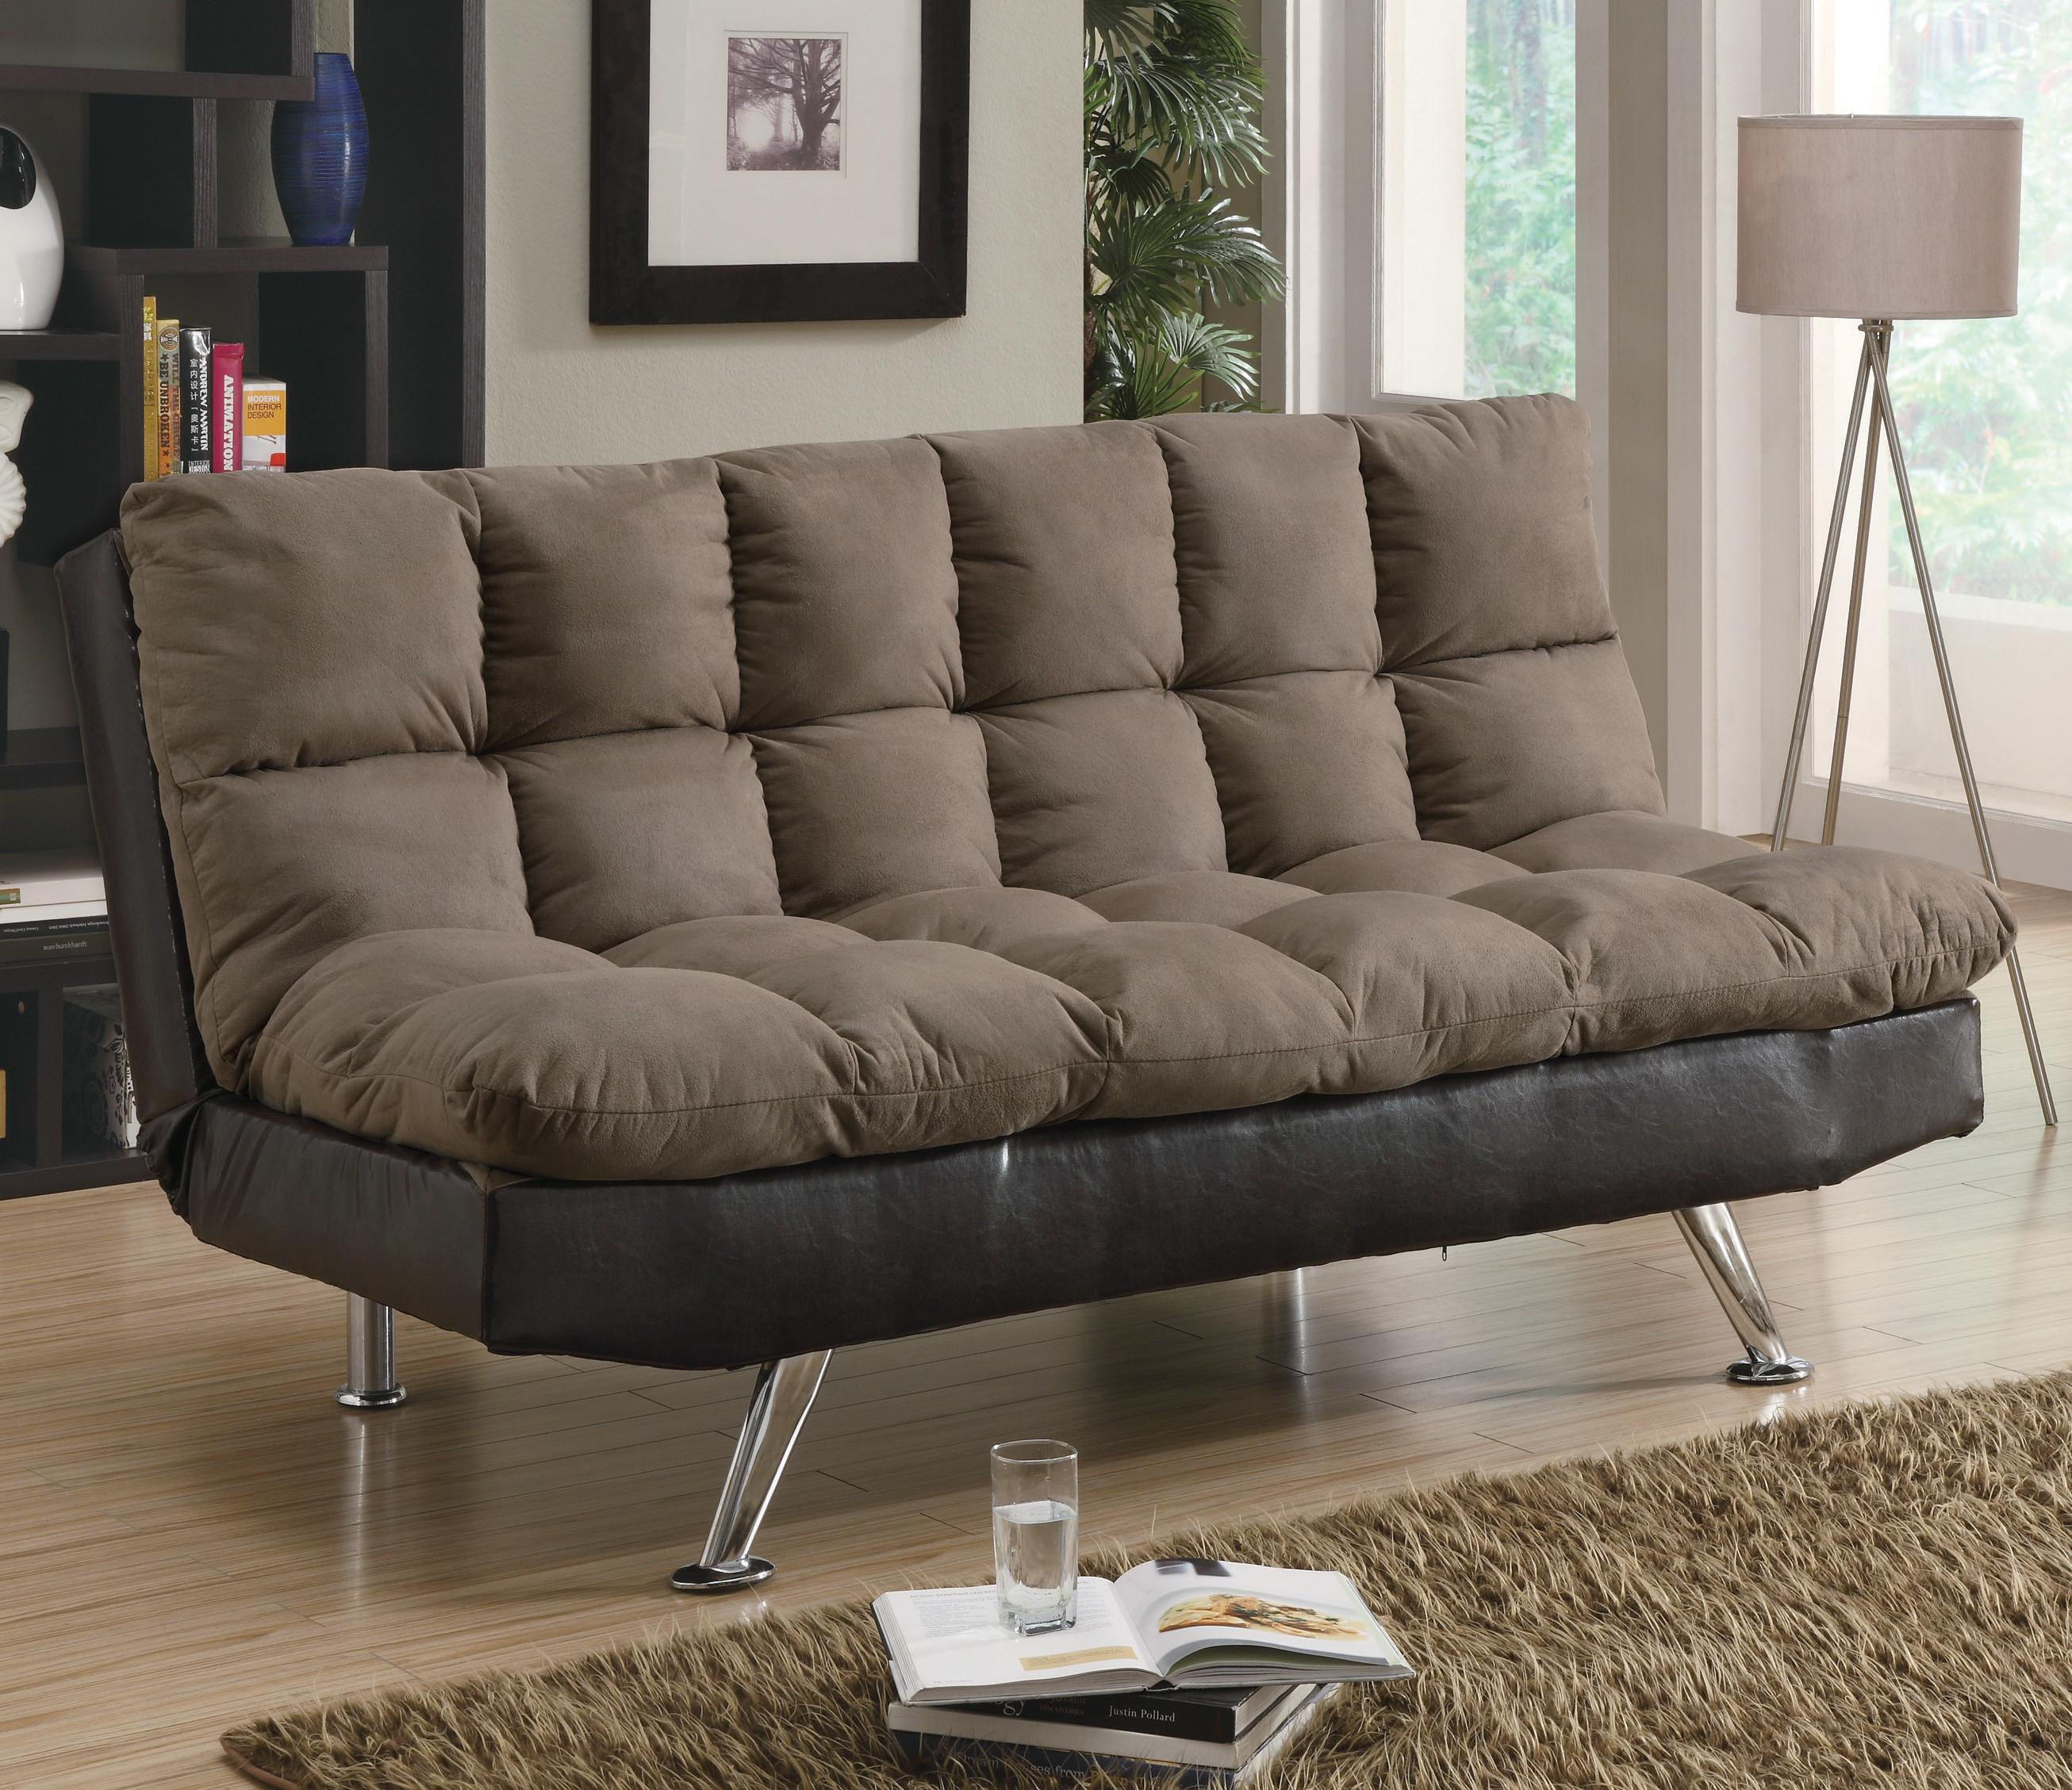 black vinyl futon sofa cleaning supplies bed dilleston chase